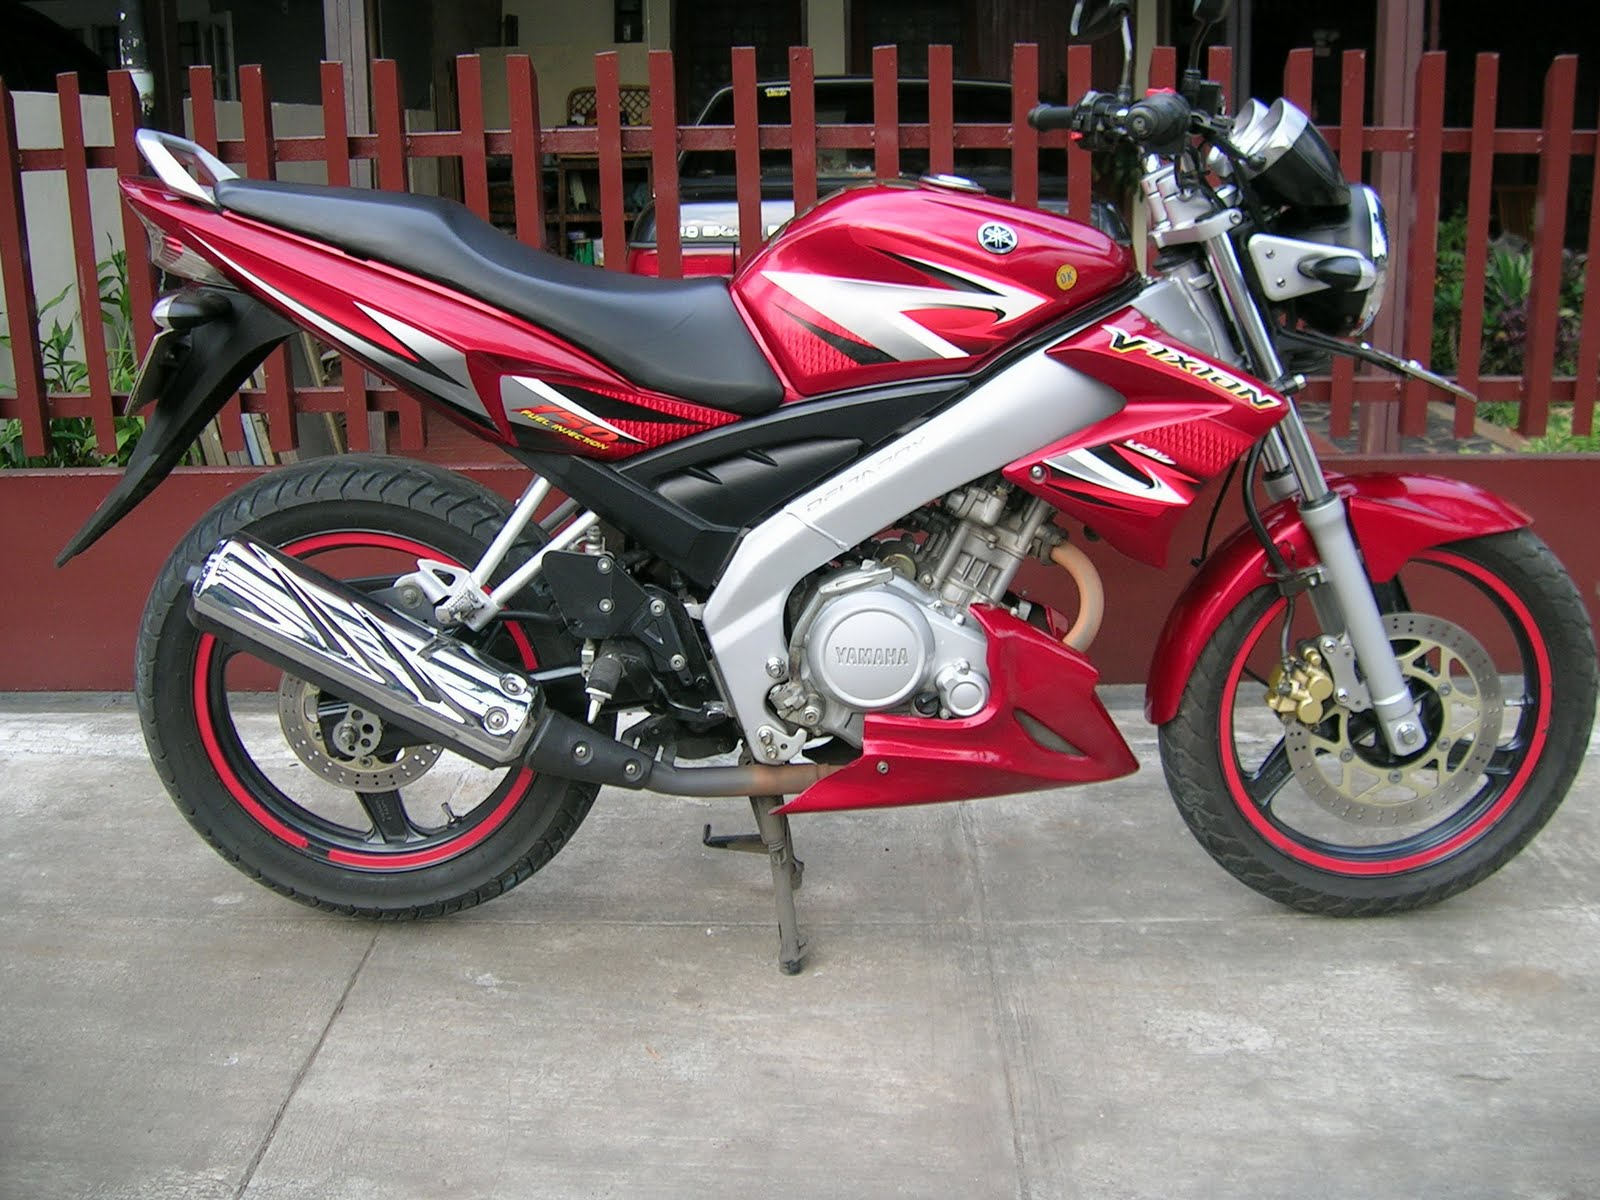 Spesifikasi Yamaha V-IXION Fuel Injection 2010